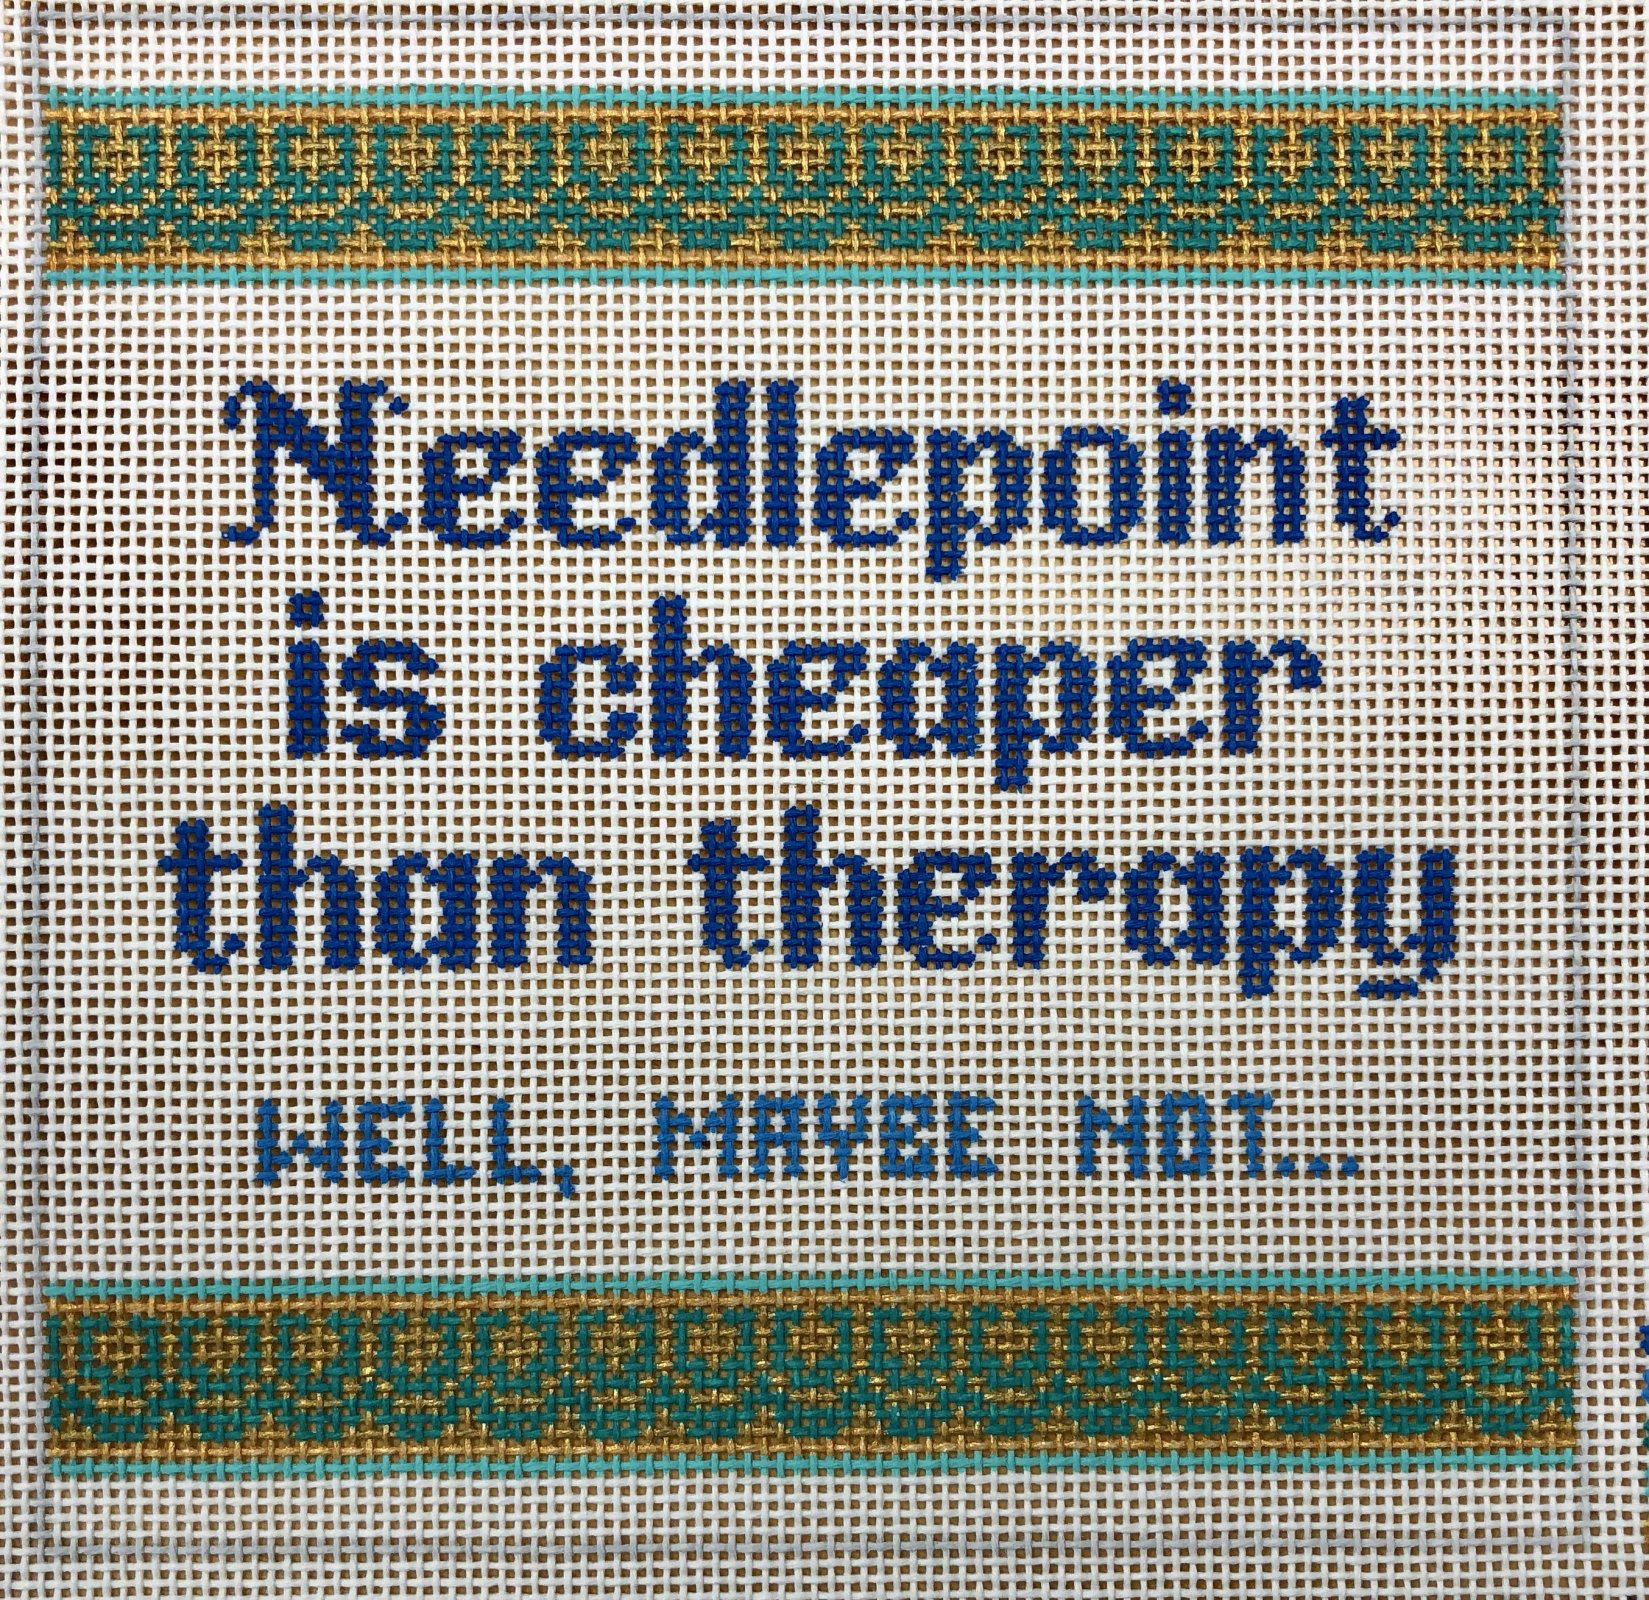 needlepoint ... cheaper than therapy